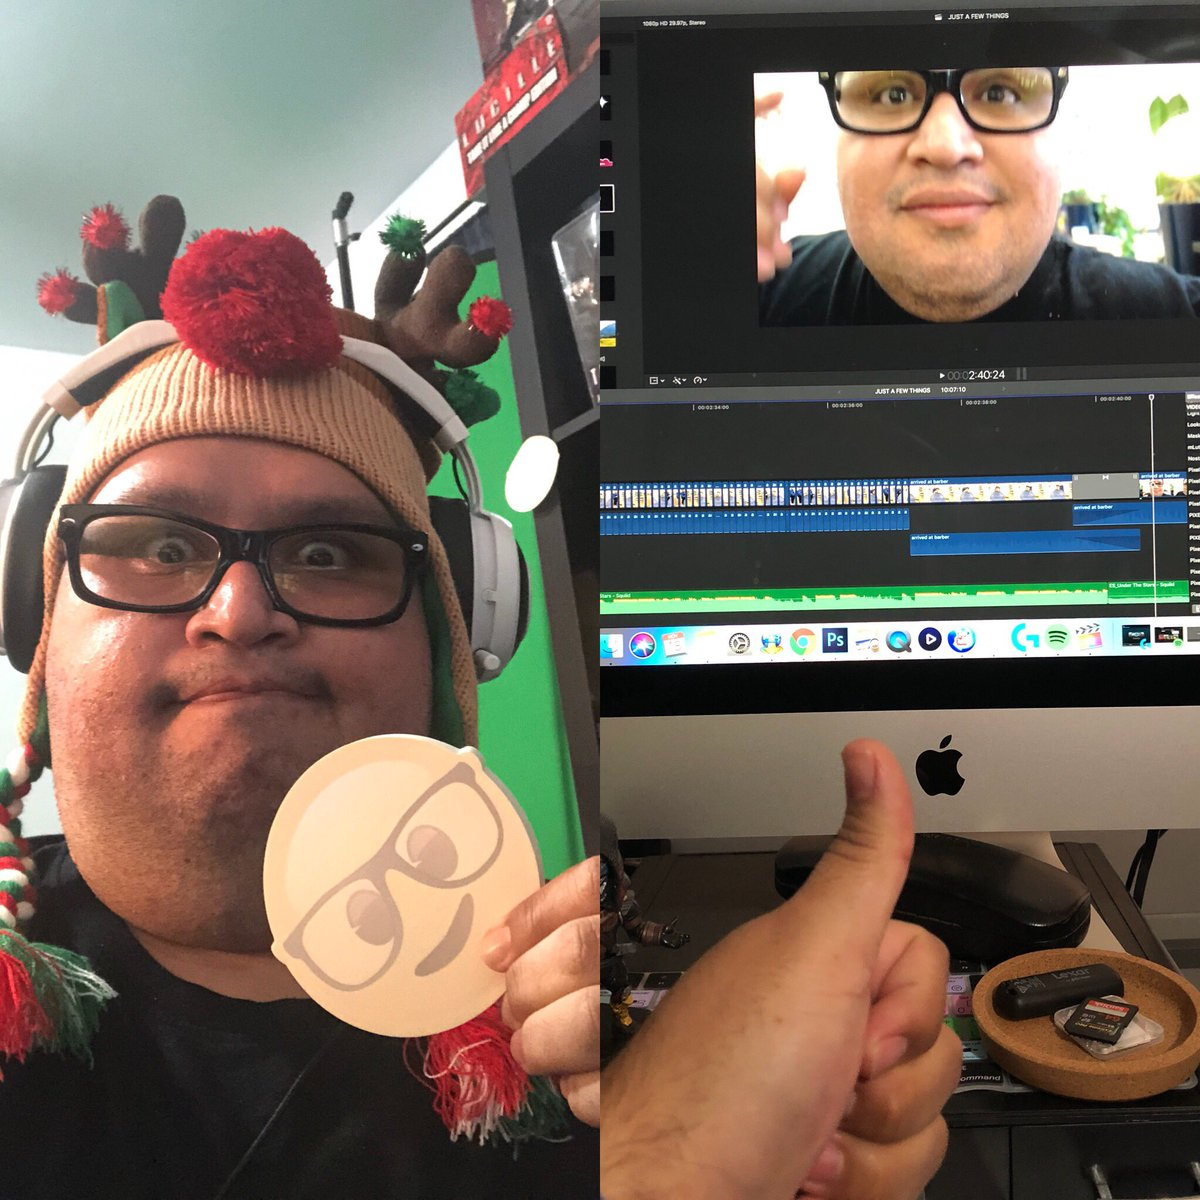 Editing on a Saturday night.  #edits #editingfun #editingvideo #filmmaking #filmmaker #satisfyingvideos #editinglife  #saturday #saturdaynight #christmastime #partytime #stayingwarm #vlog #vlogger #youtuber #sleepy #whynot<br>http://pic.twitter.com/cgE8Qqp4FR